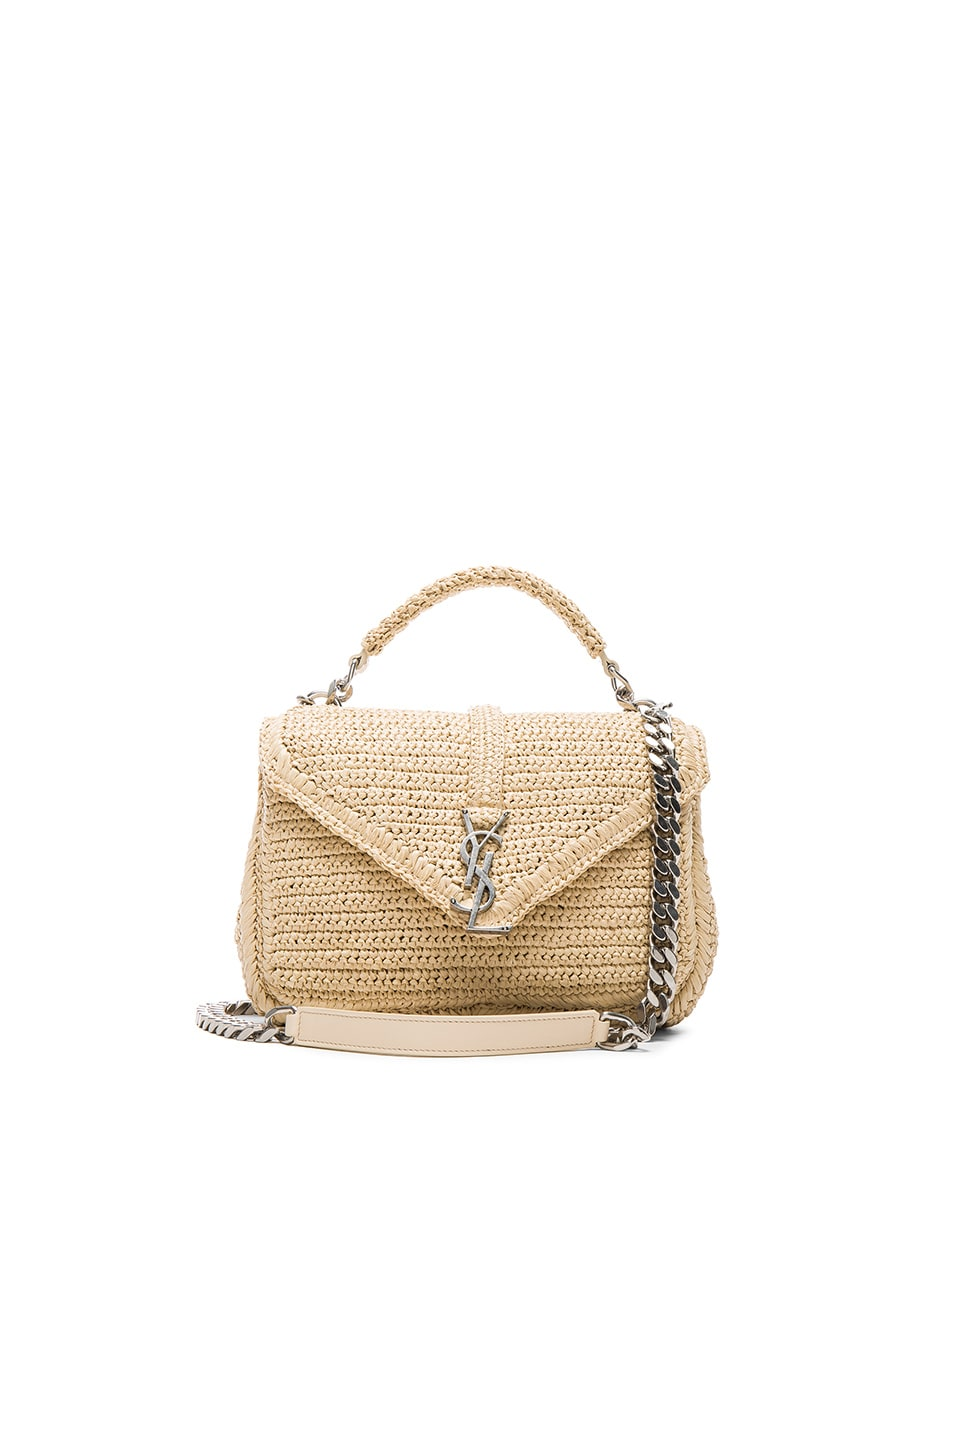 Image 1 of Saint Laurent Medium Raffia Monogram College Bag in Natural